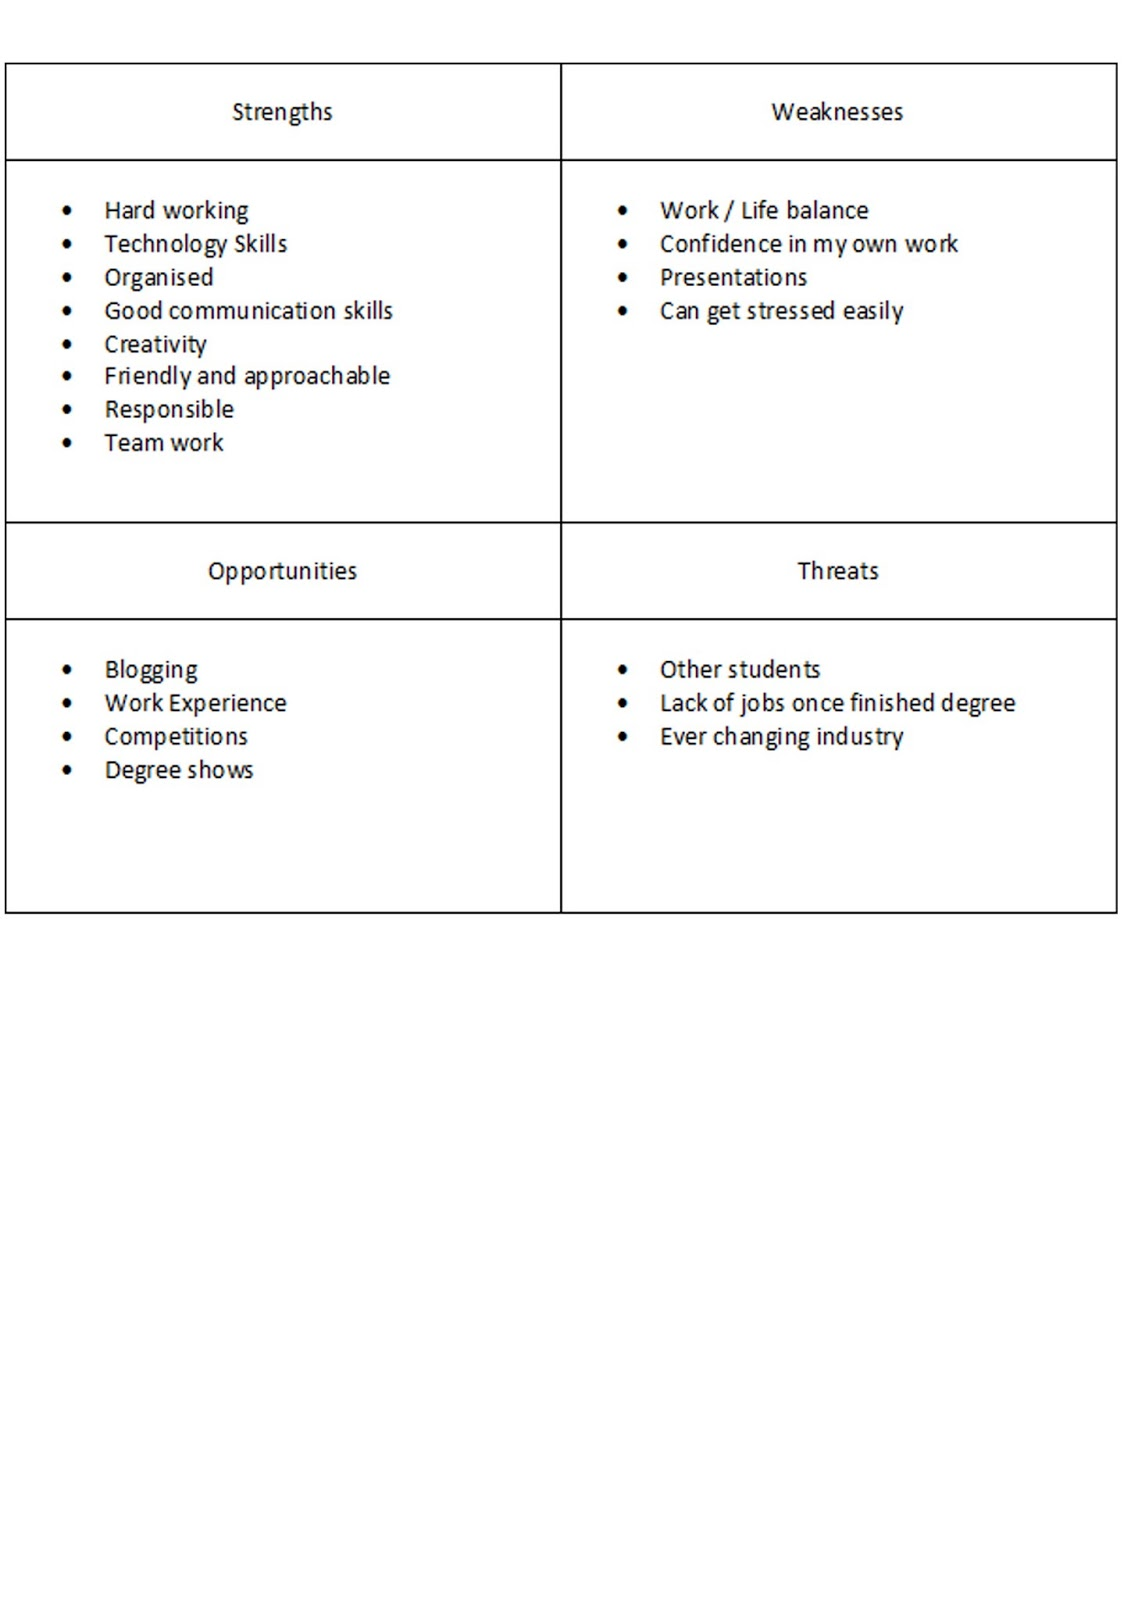 swot analysis sweden In this lesson, we will define the swot analysis (strengths, weaknesses, opportunities, threats) and explain how it relates to businesses today.